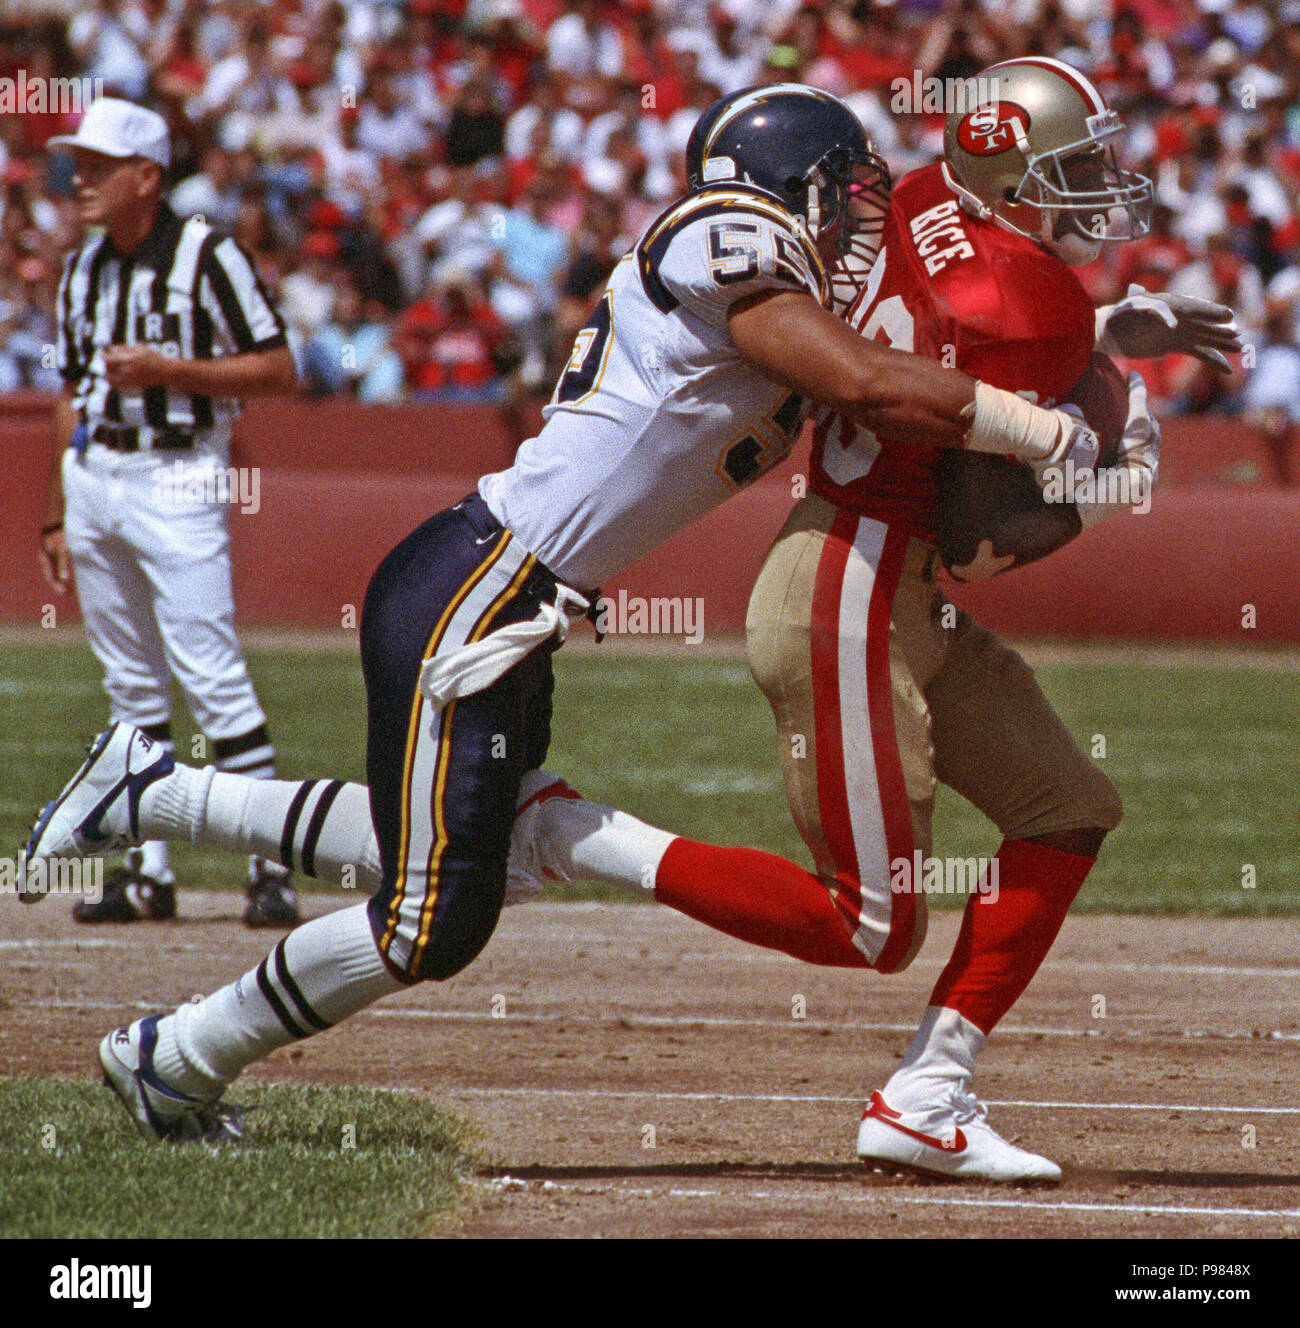 San Diego Chargers Chargers: San Francisco, California, USA. 8th Sep, 1991. San